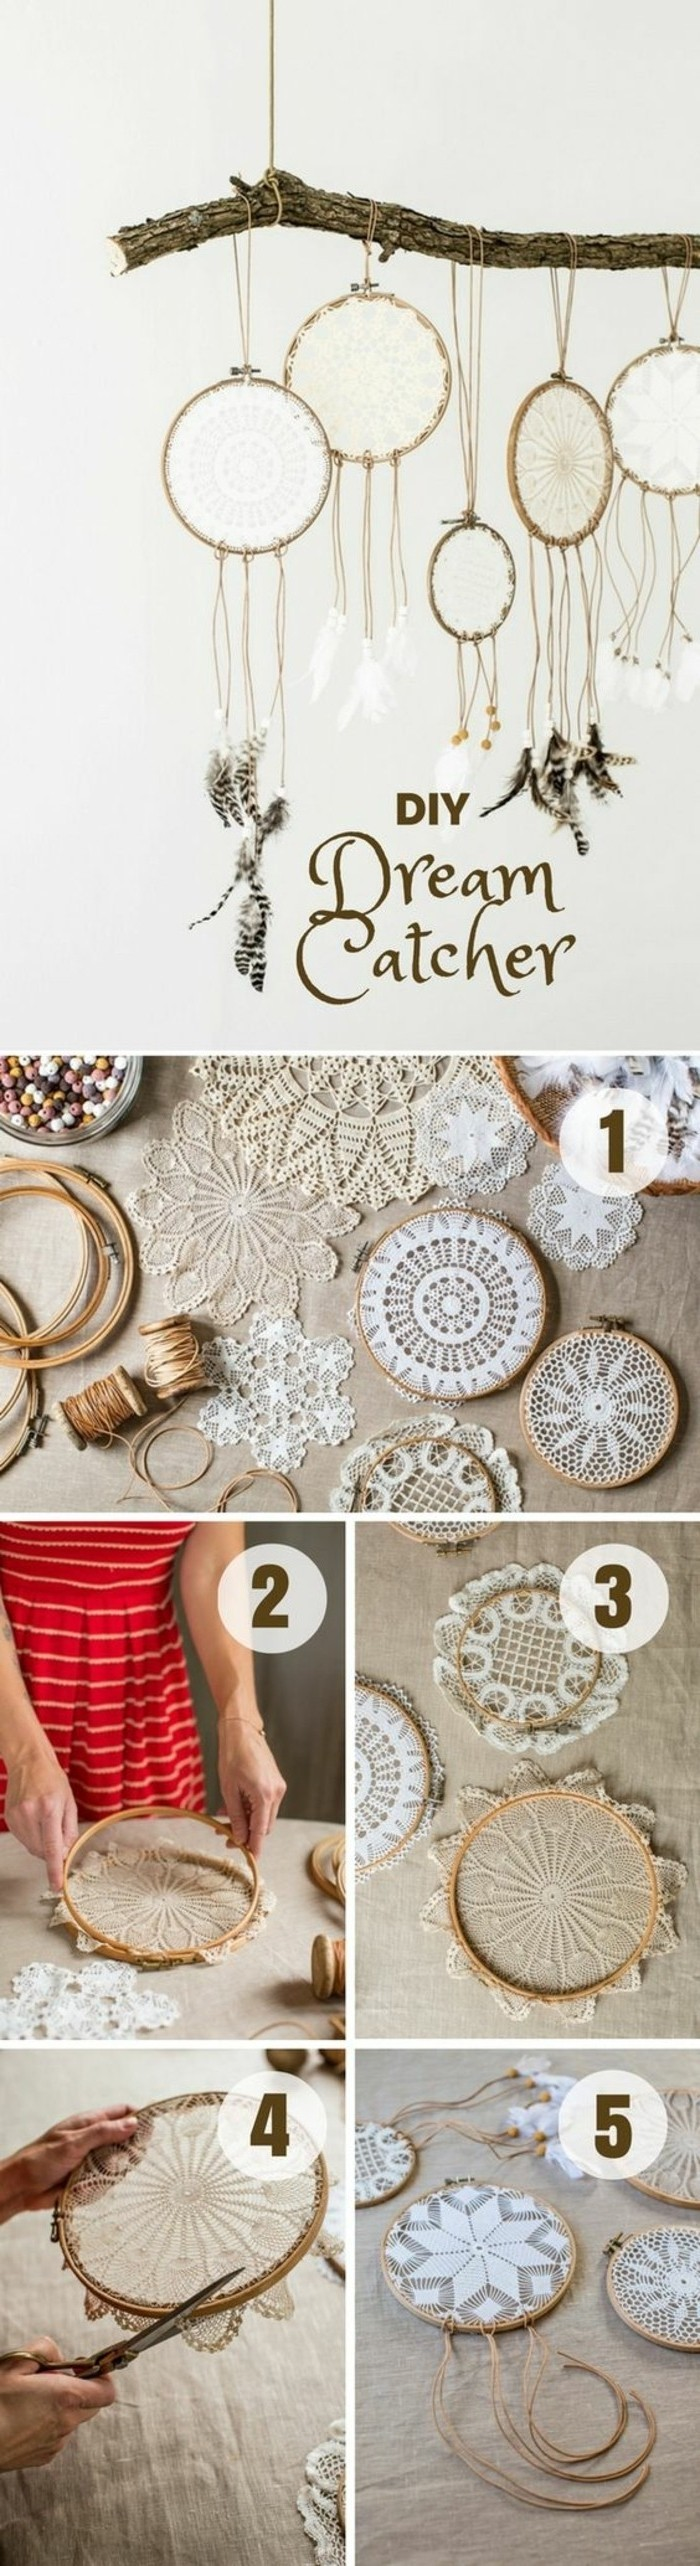 making a diy dreamcatcher, using crochet doilies, explained in five steps, picture of necessary materials and processes, and an image of the end results